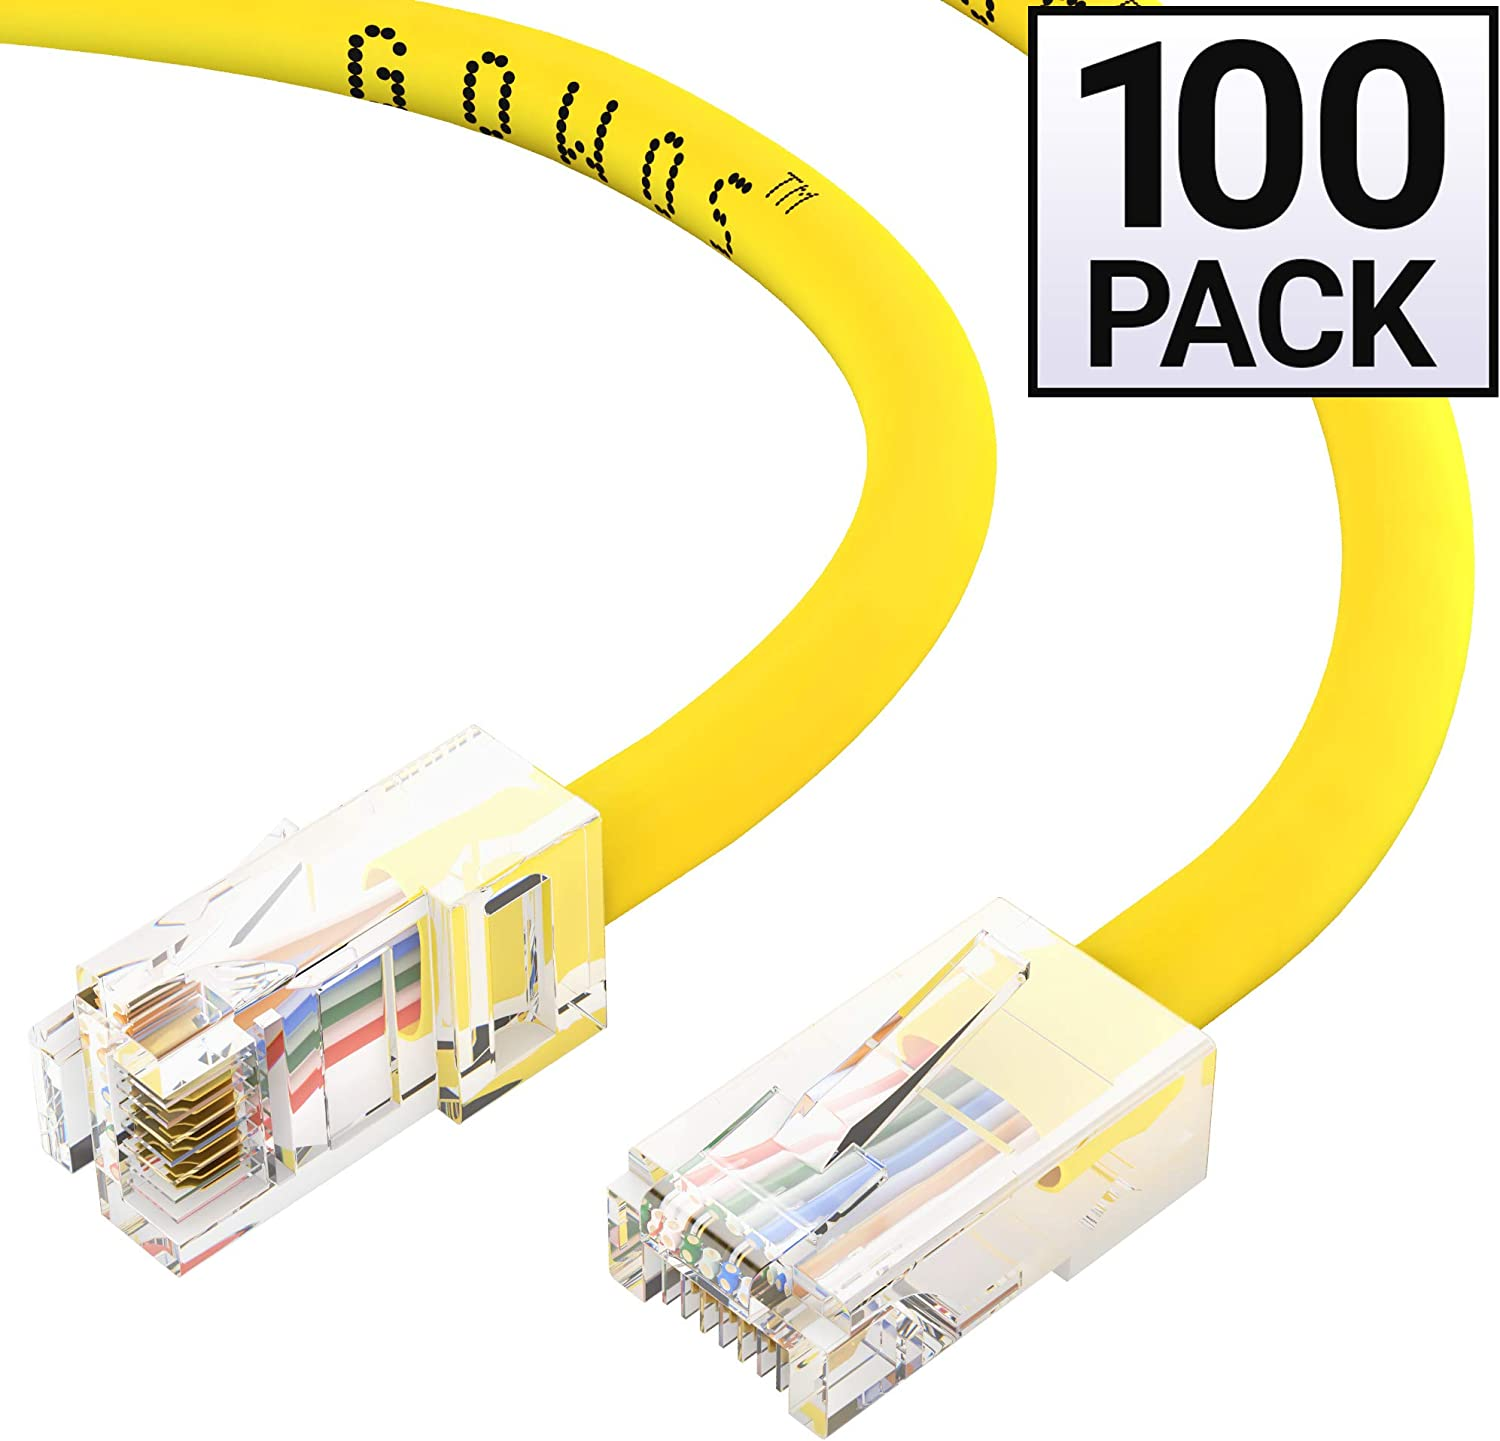 350MHz Yellow 24AWG Network Cable with Gold Plated RJ45 Non-Booted Connector 100-Pack - 7 Feet 1Gigabit//Sec High Speed LAN Internet//Patch Cable GOWOS Cat5e Ethernet Cable